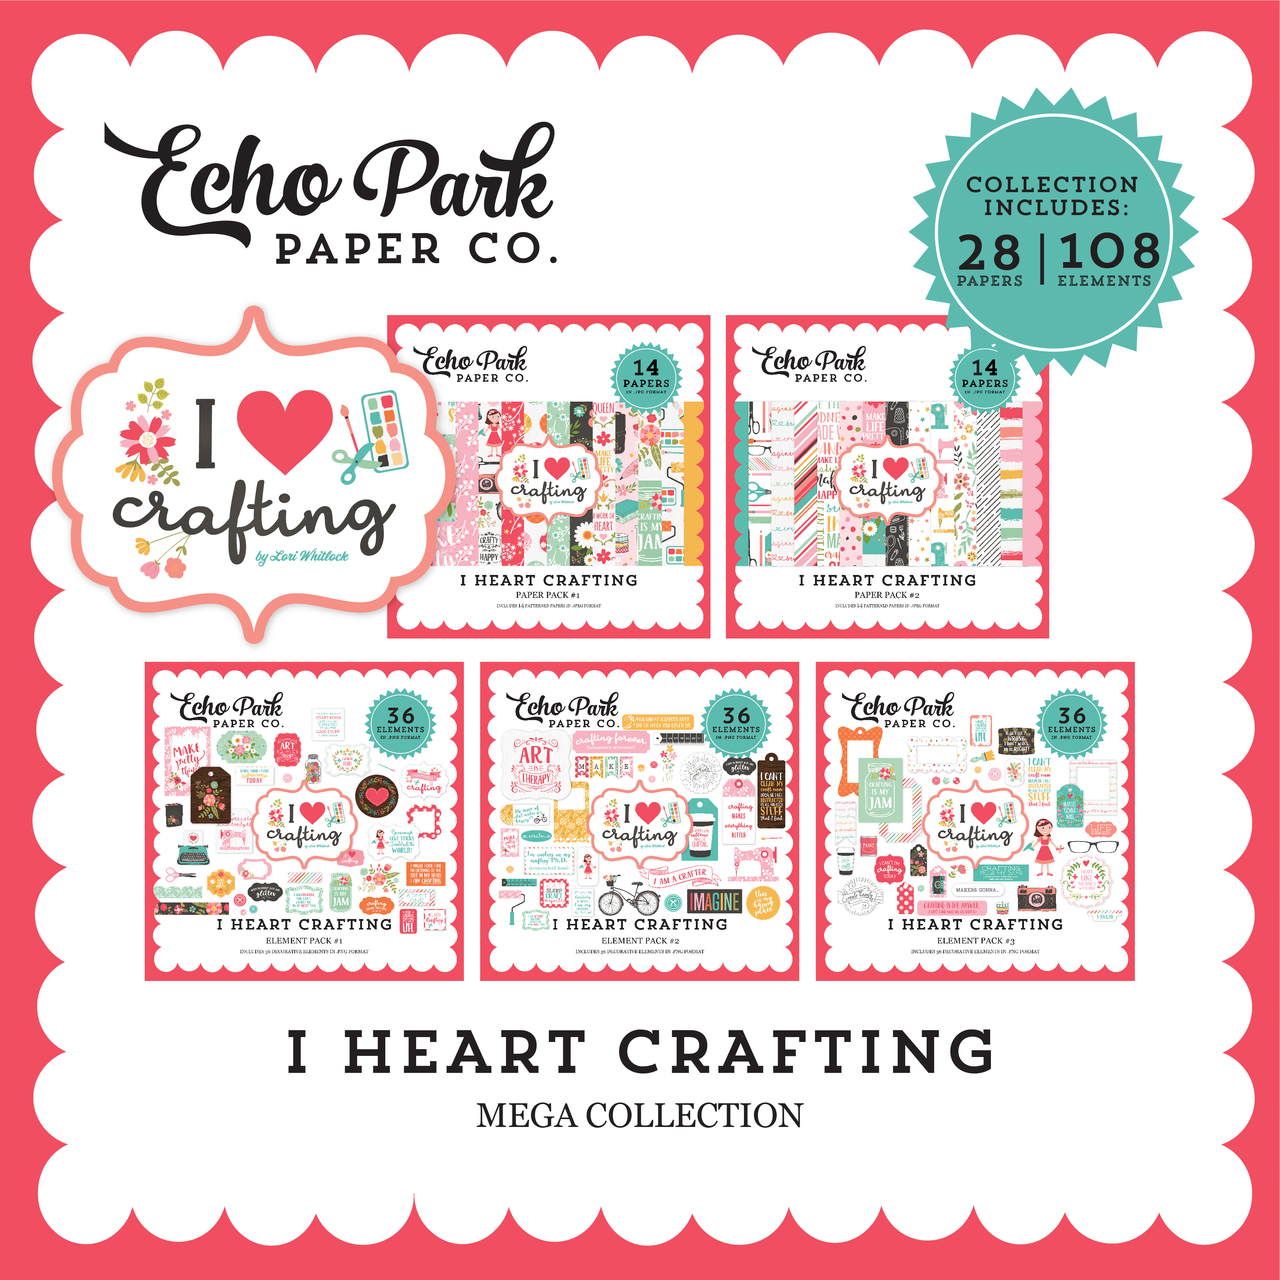 I Heart Crafting Mega Collection